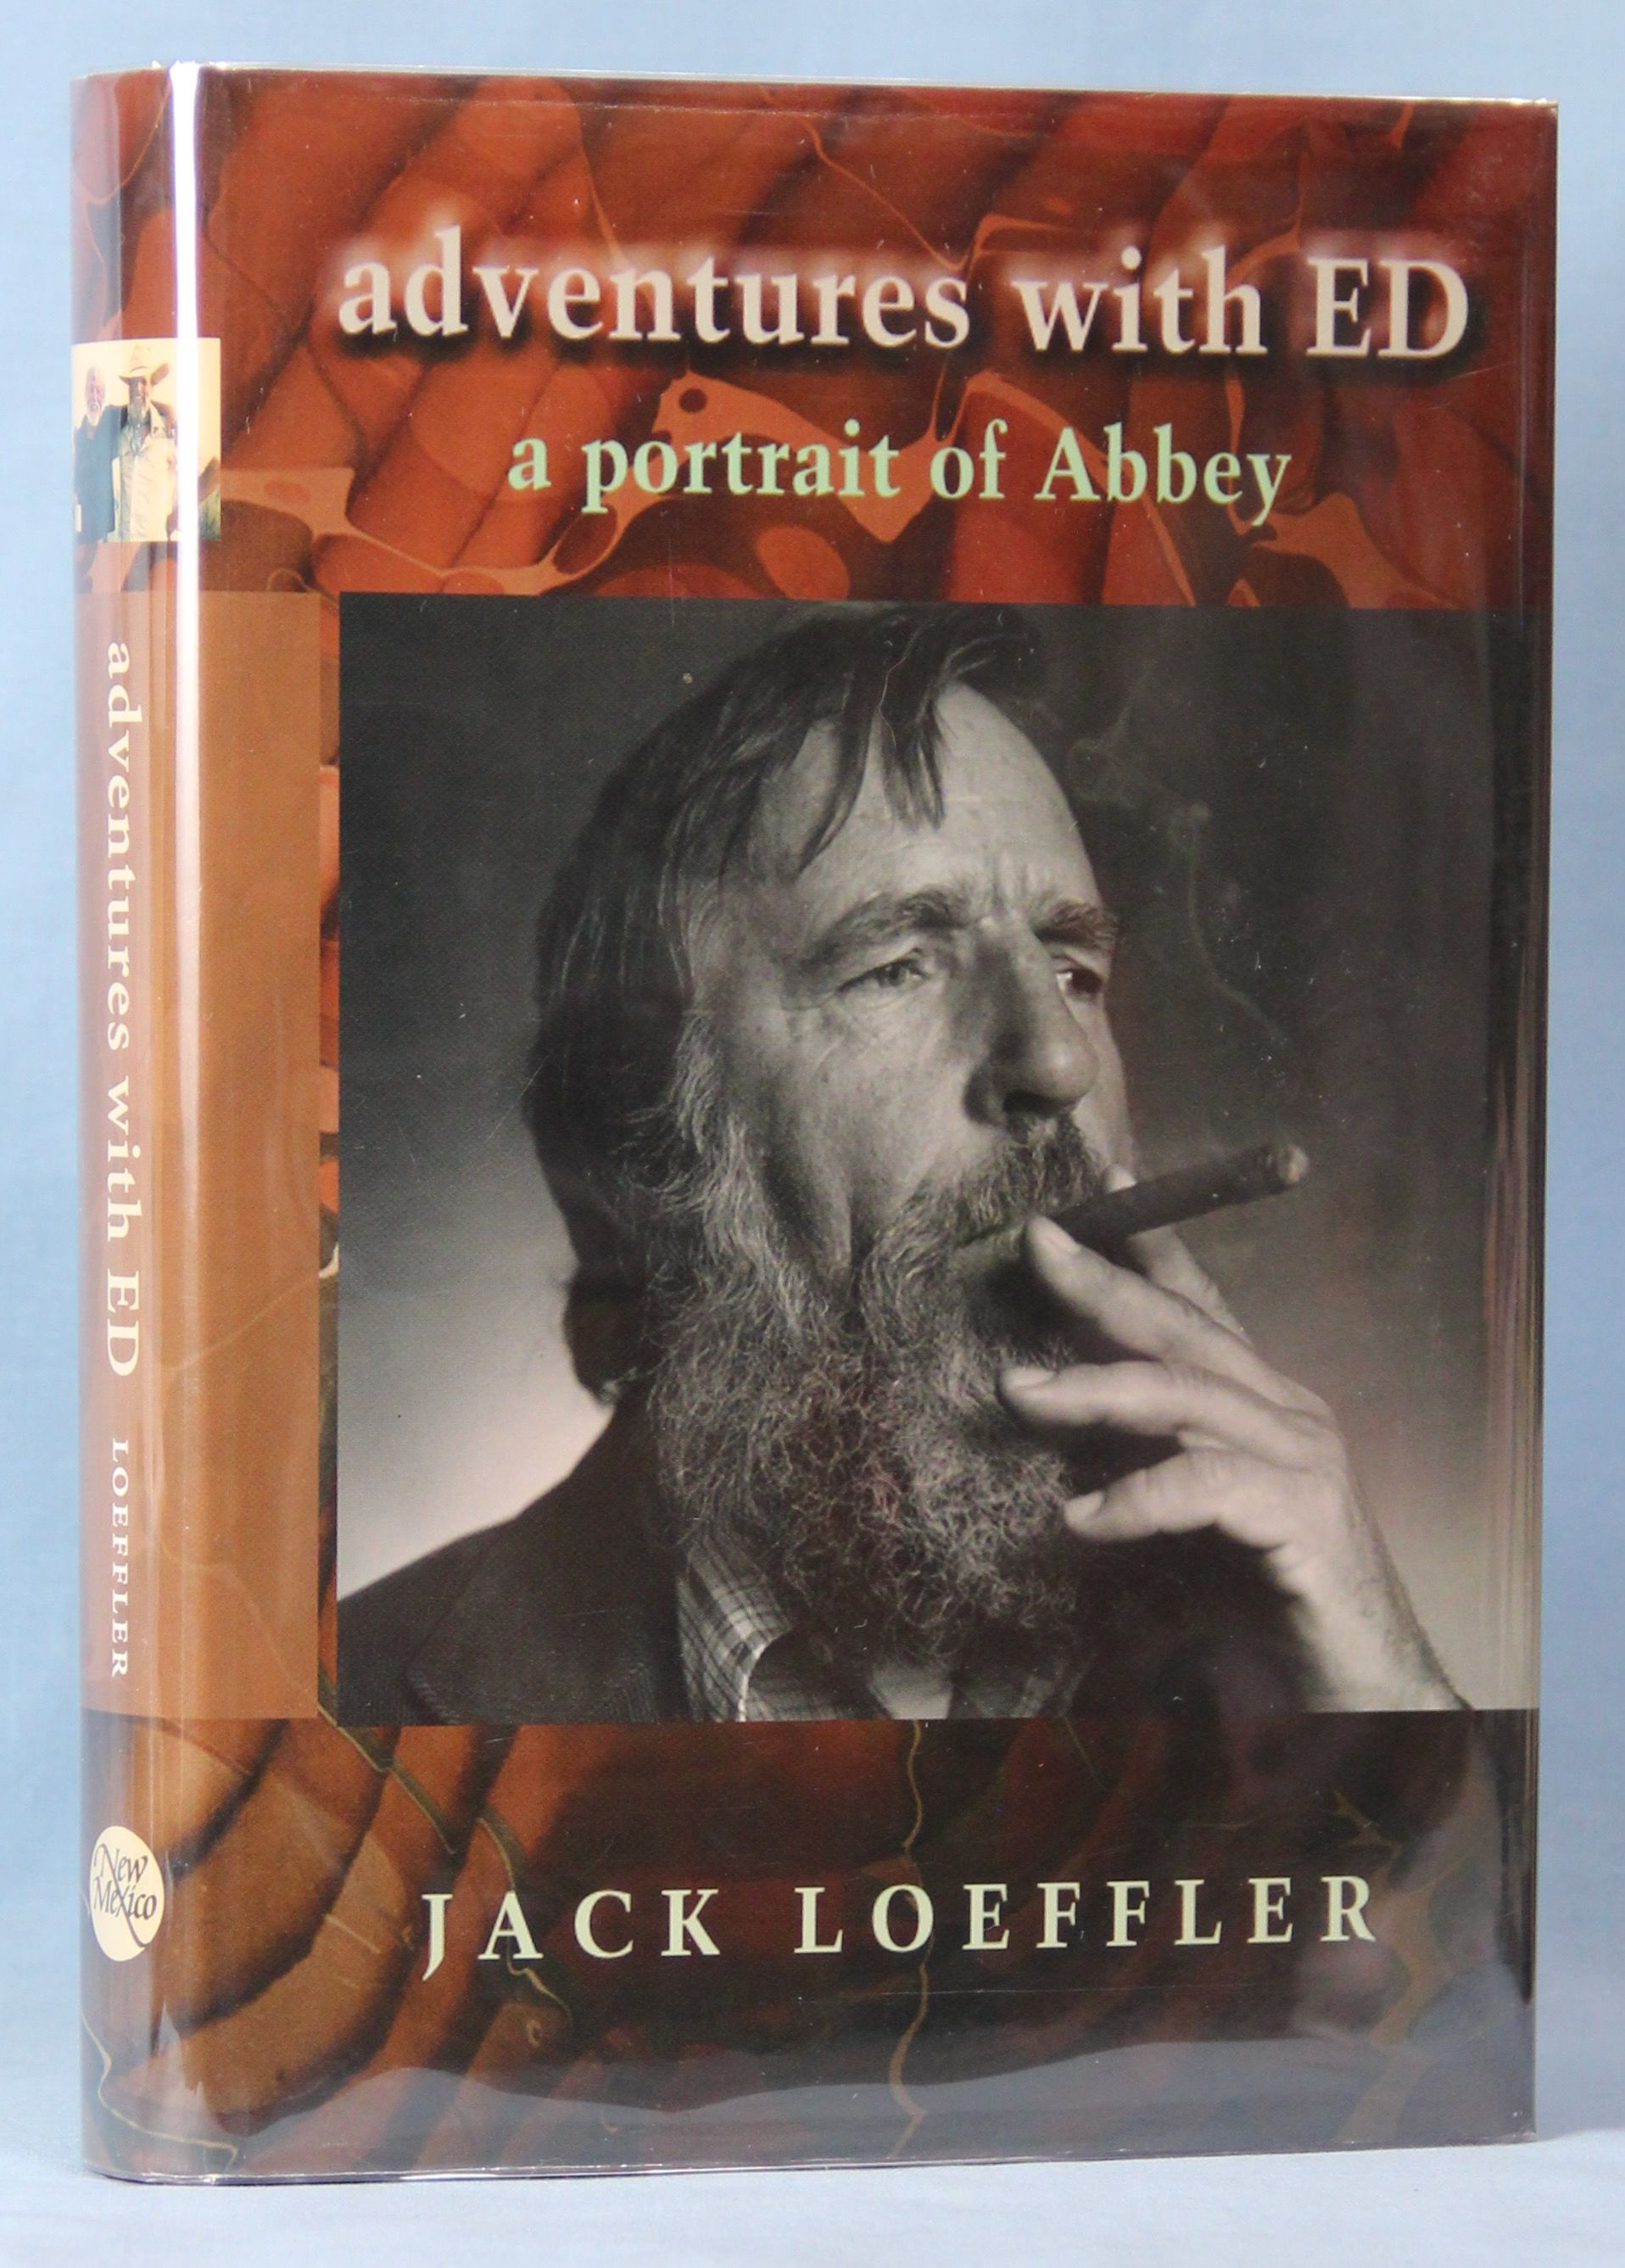 Image for Adventures with Ed: A Portrait of Abbey (Signed)